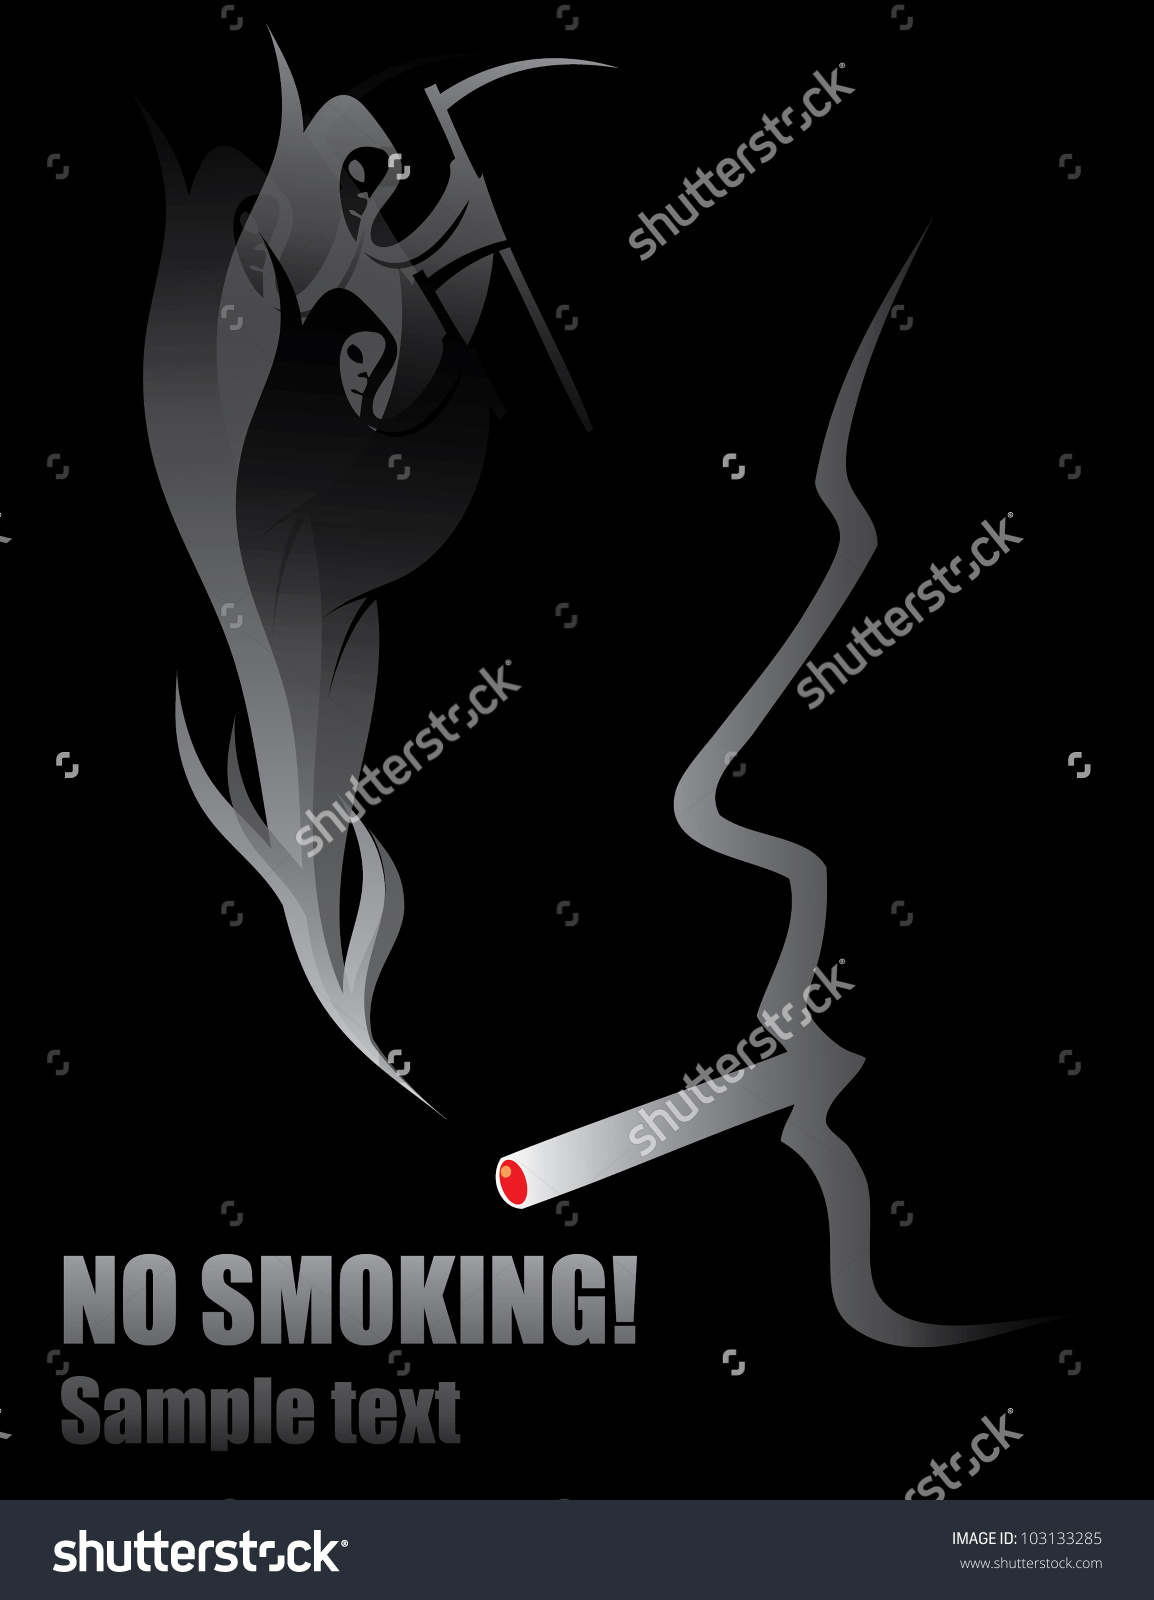 Best 68 No Smoking Wallpaper on HipWallpaper Smoking Wallpapers 1154x1600